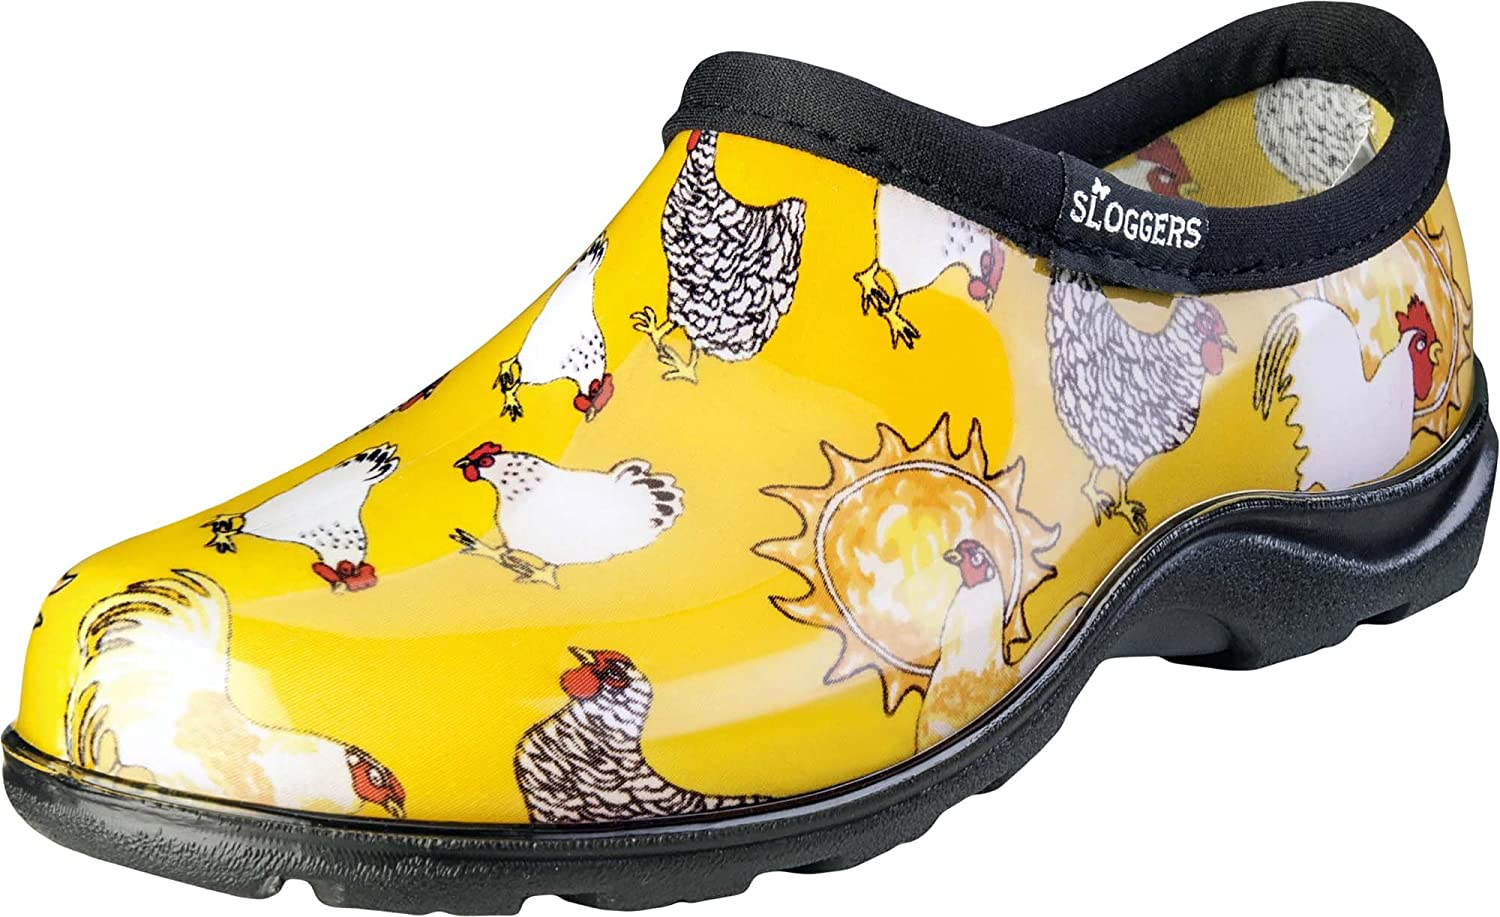 Sloggers Women's WaterproofRain and Garden Shoe with Comfort Insole, Chickens Daffodil Yellow, Size 9, Style 5116CDY09